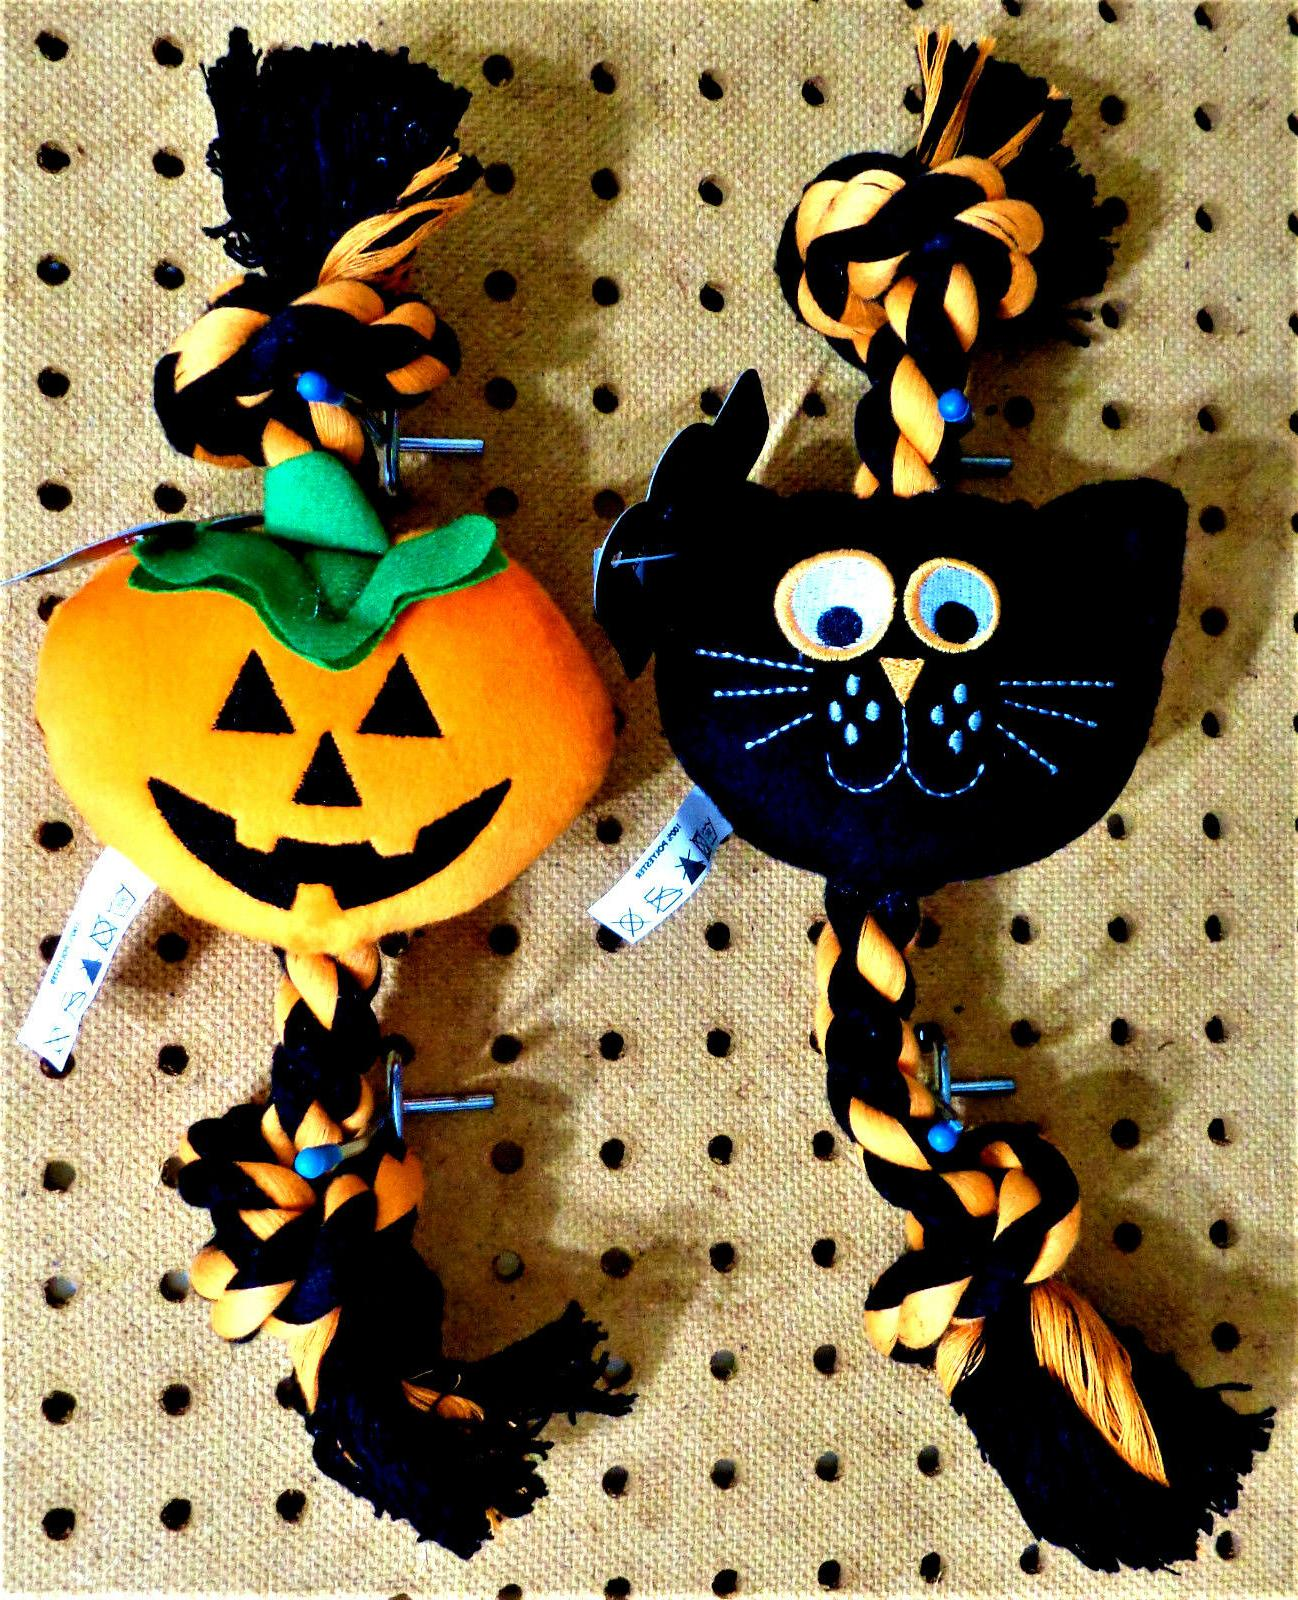 halloween 12 squeaky plush and braided rope